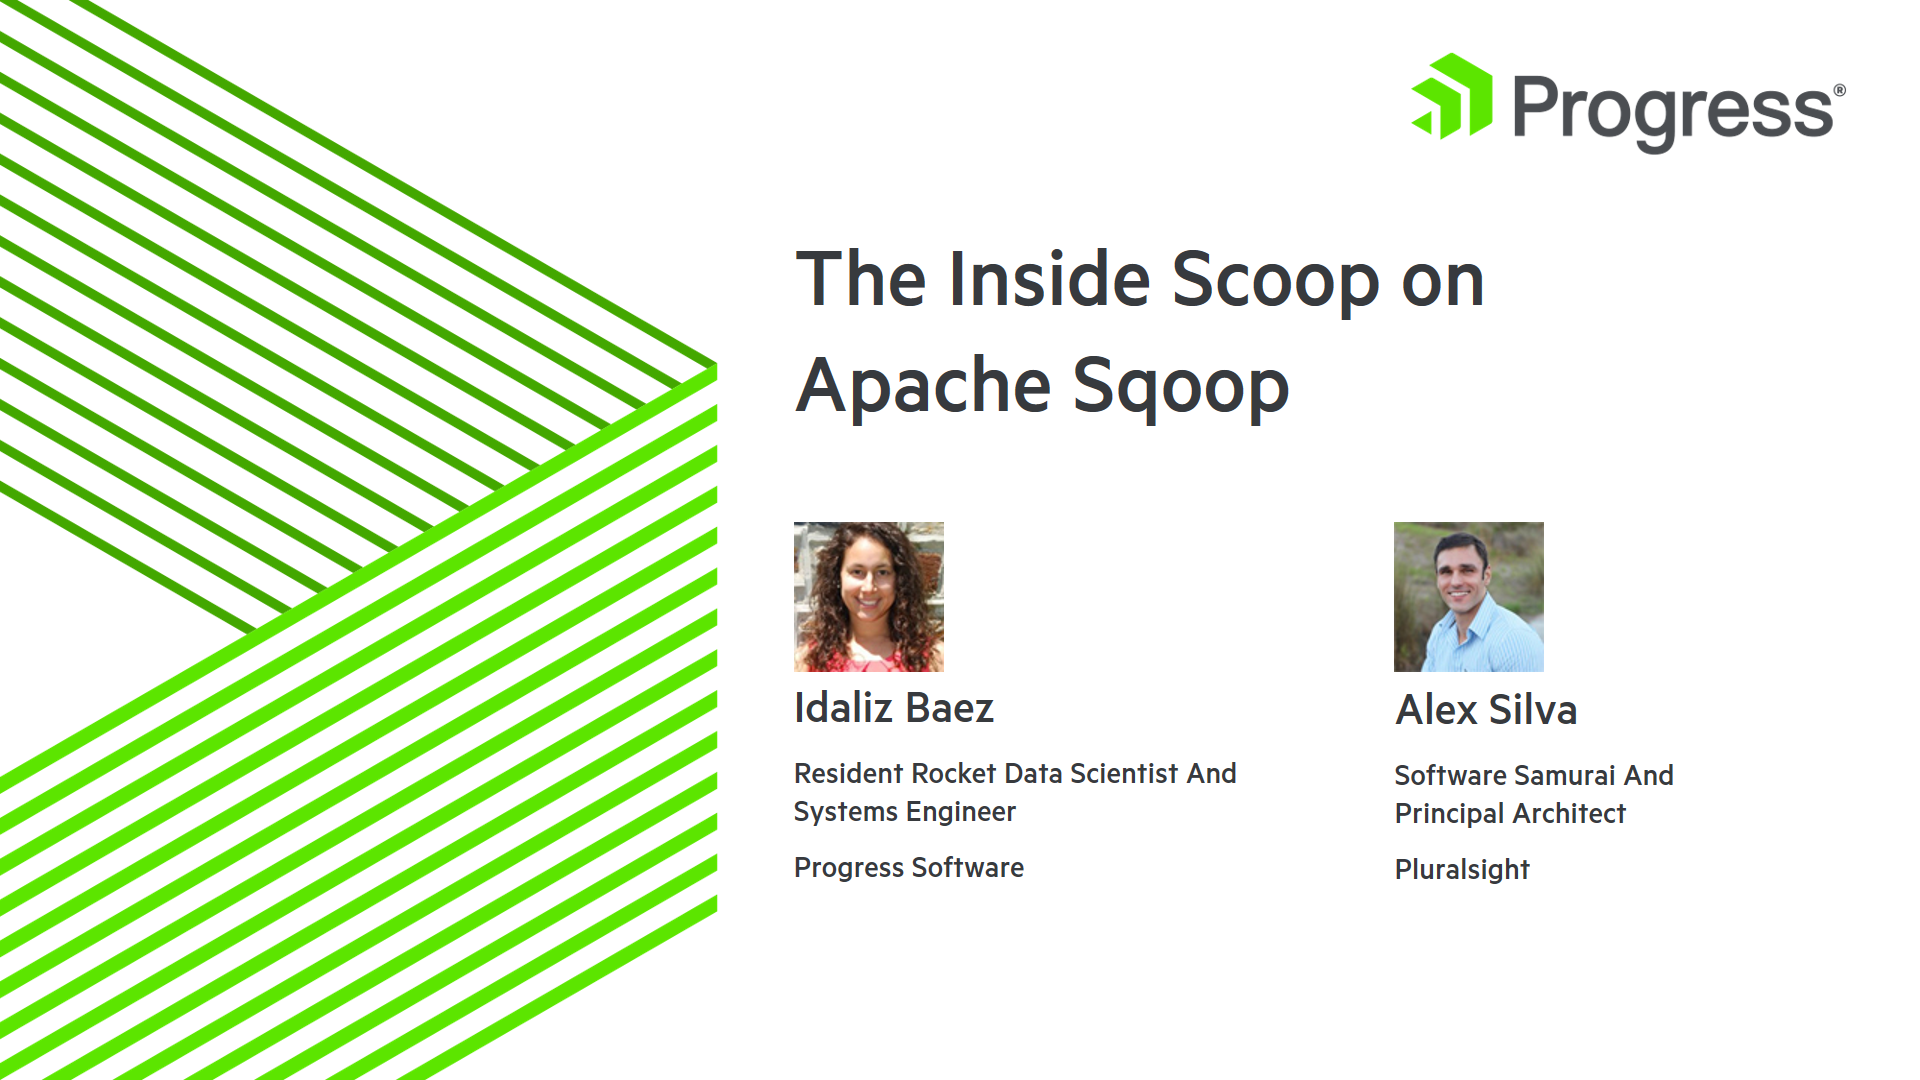 The Inside Scoop on Apache Sqoop